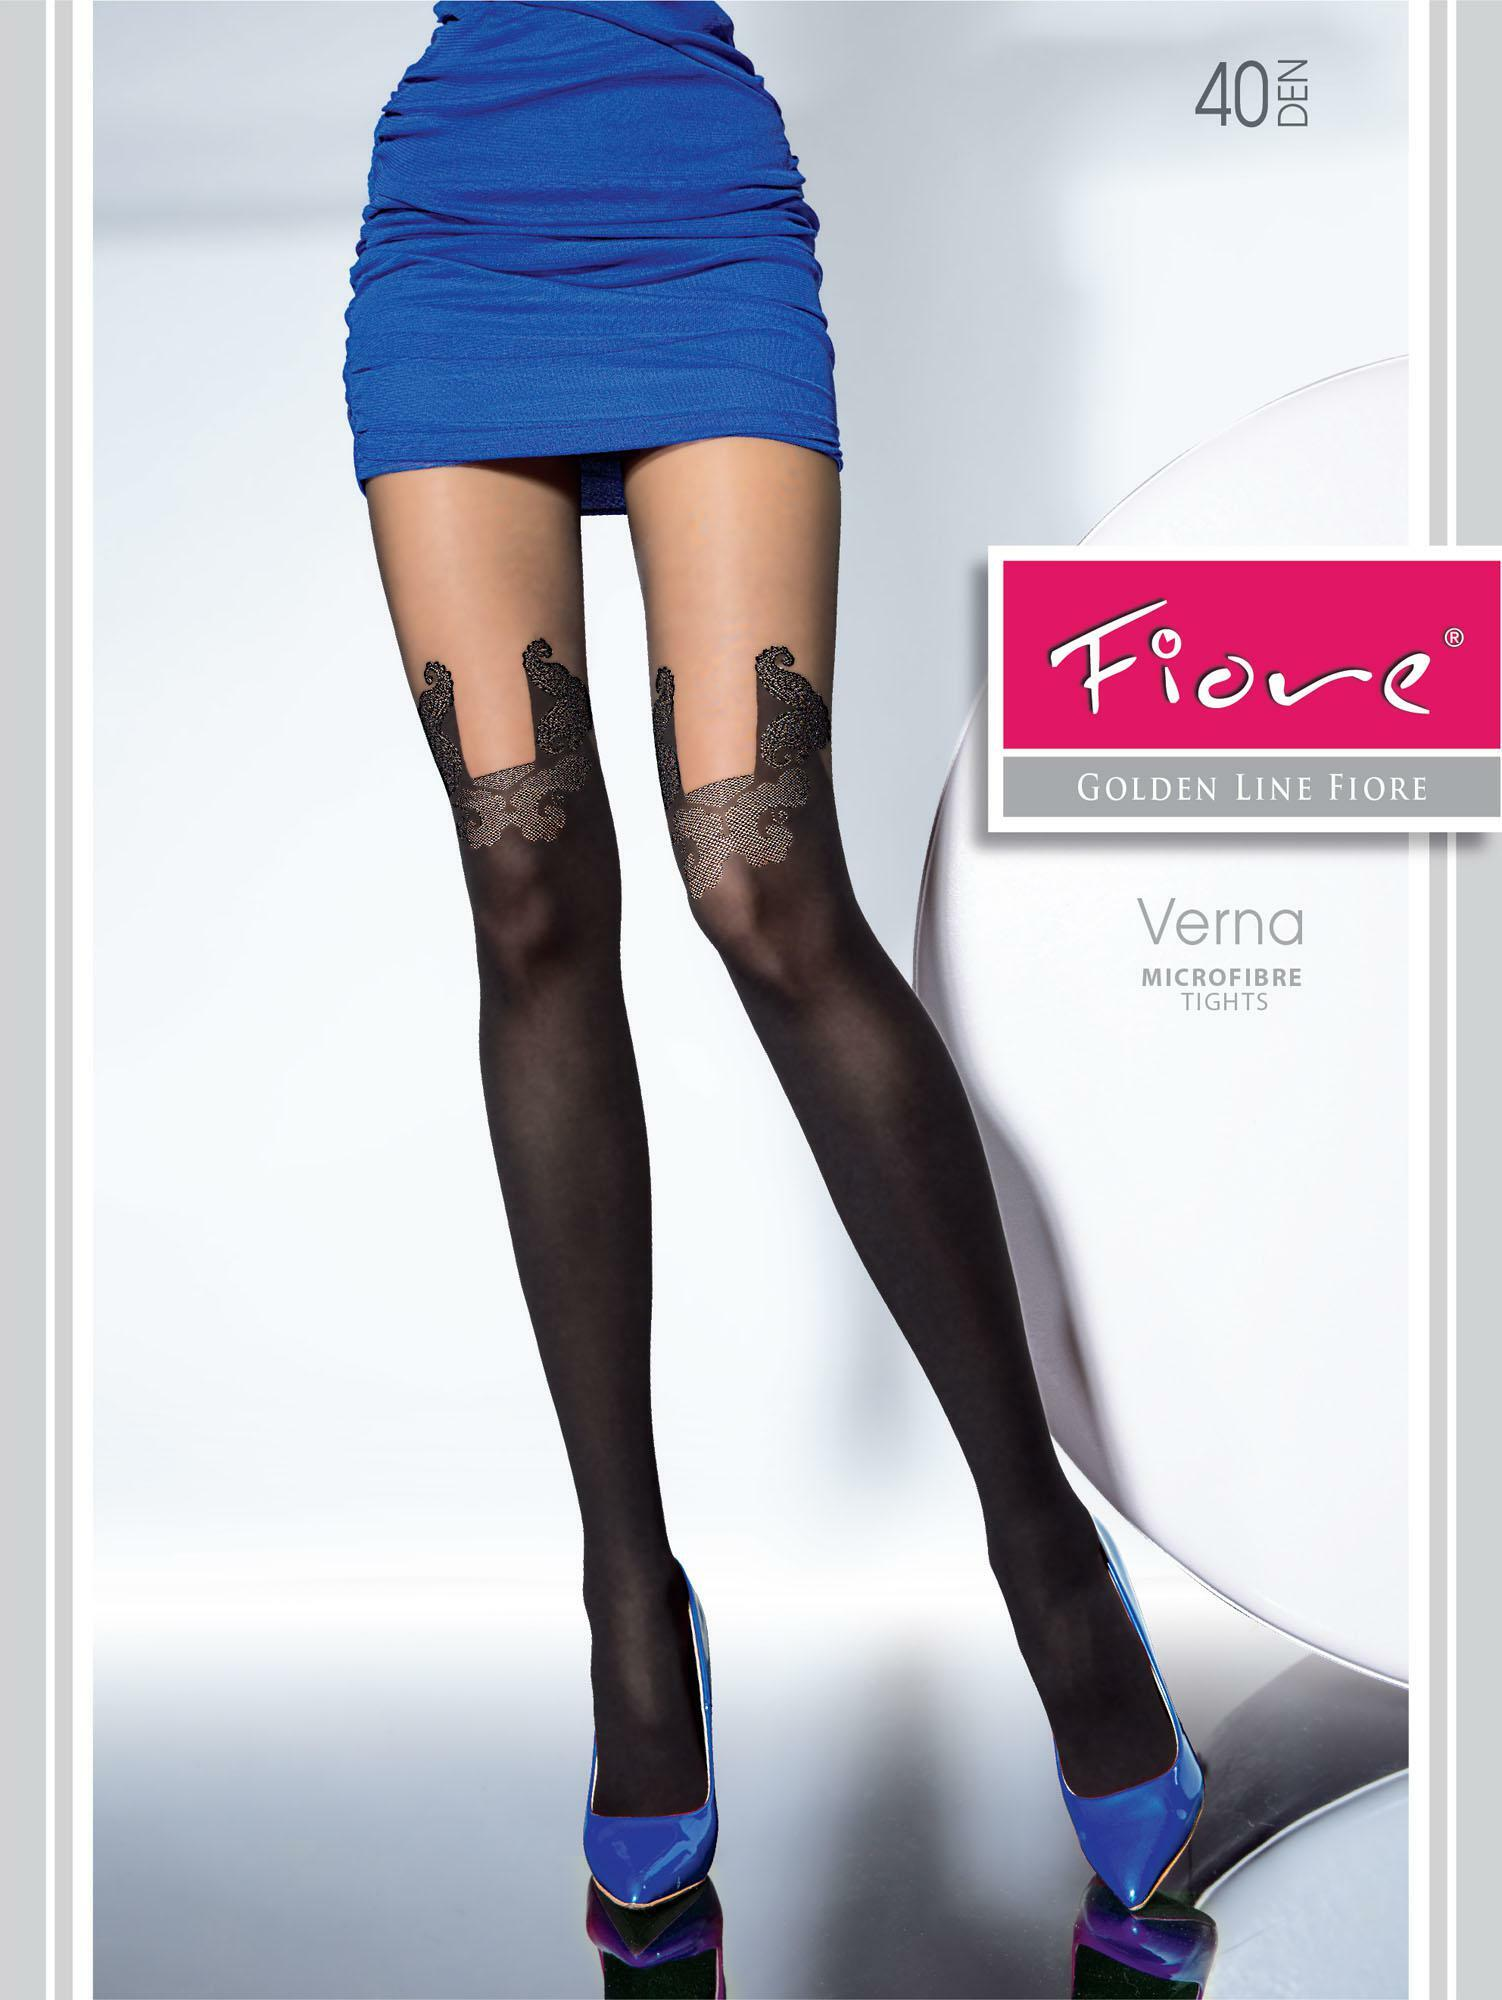 Fiore: Parisian Life Patterned Microfibre Tights SOLD OUT